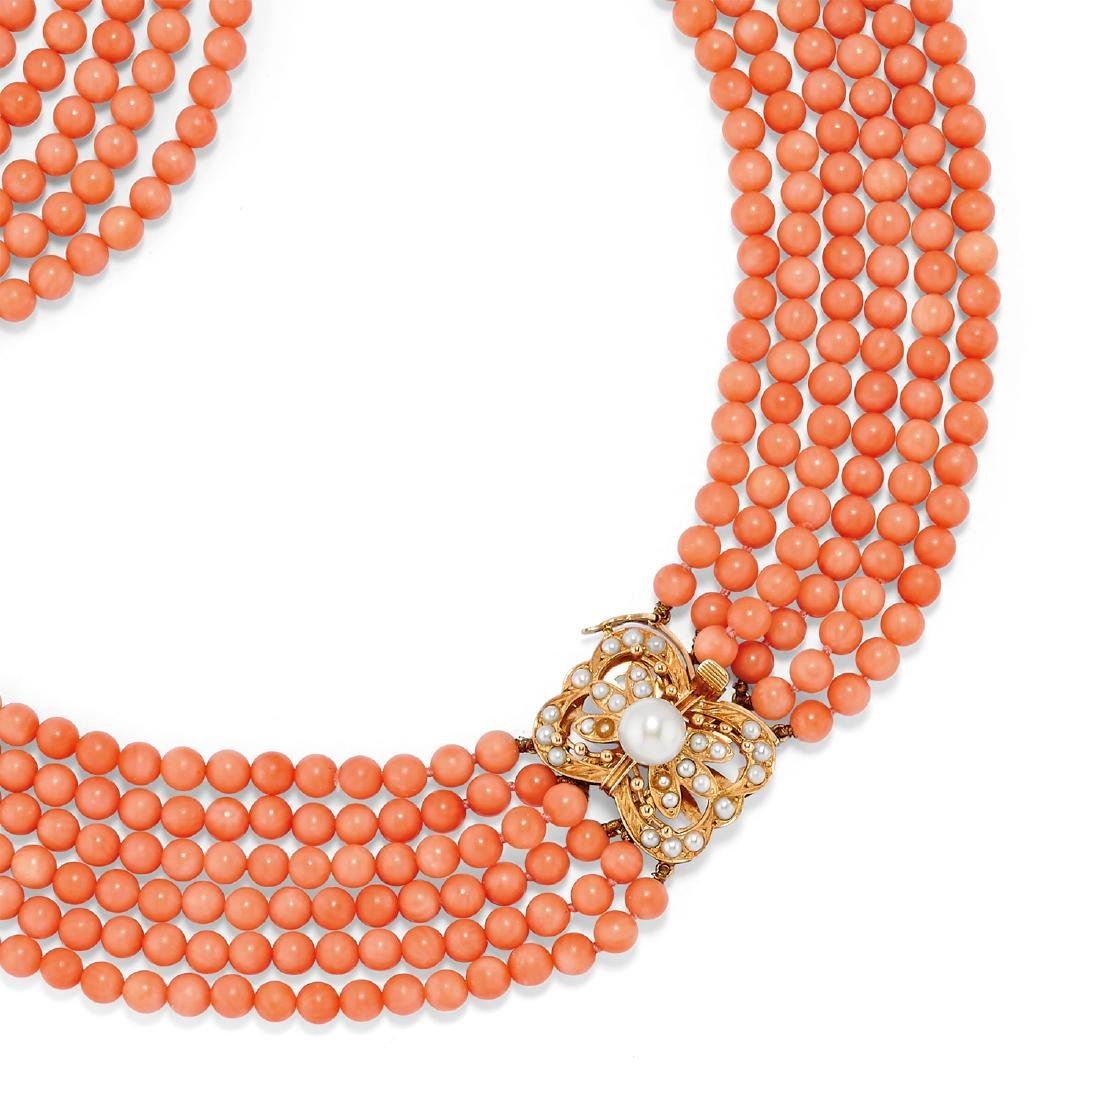 A 14k yellow gold, cultured pearl and coral necklace